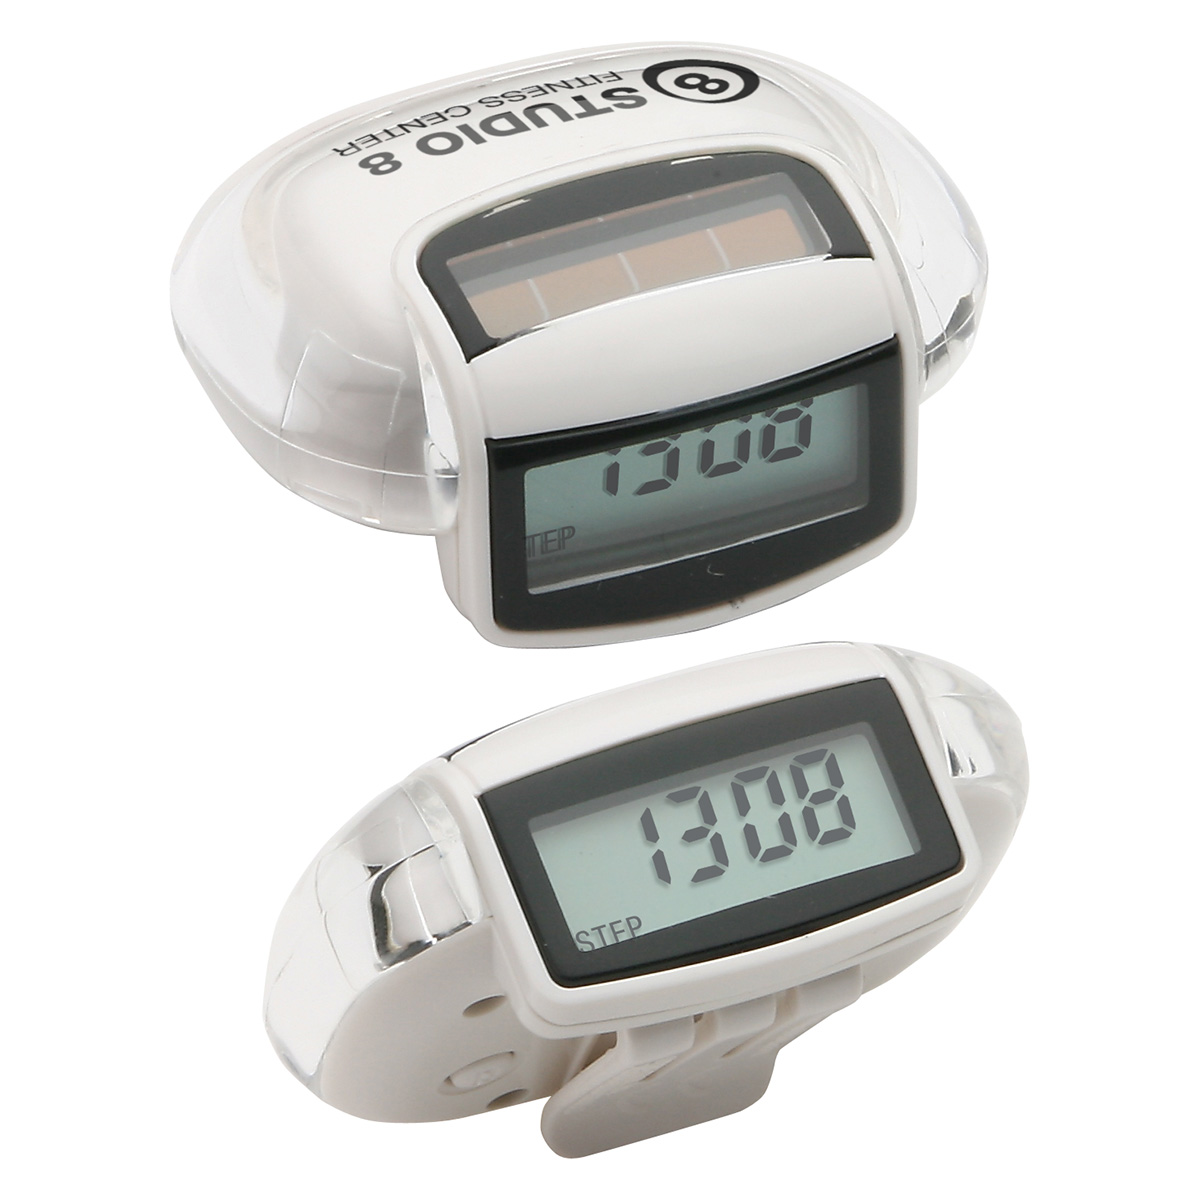 Sun Step Solar Pedometer, WHF-SS11 - 1 Colour Imprint